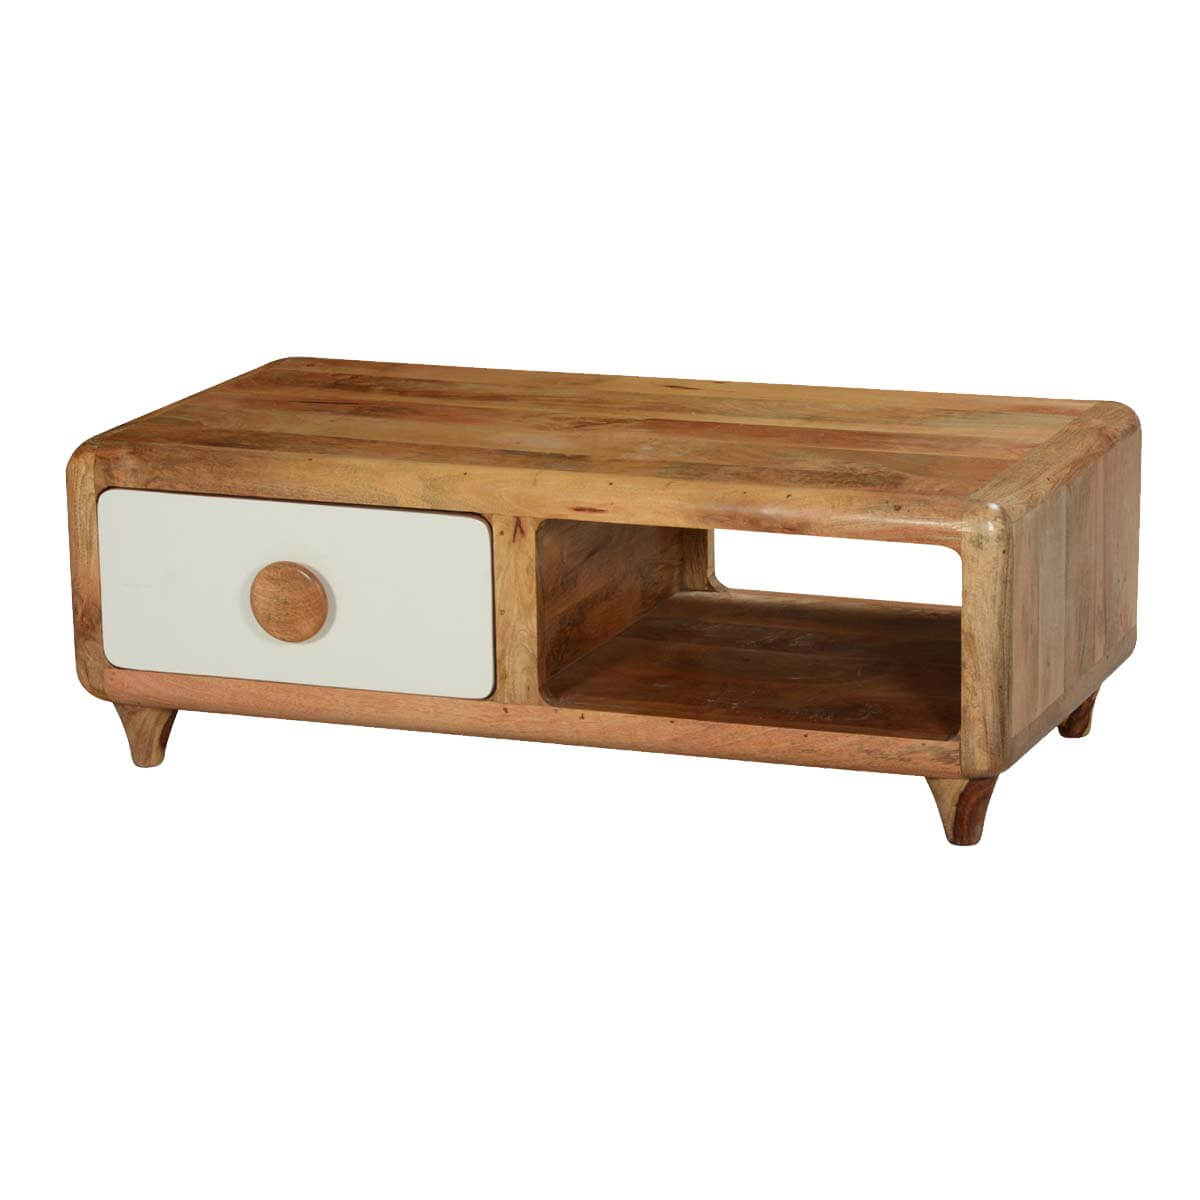 Natural Mango Wood Rounded Corners TV Console Media Cabinet